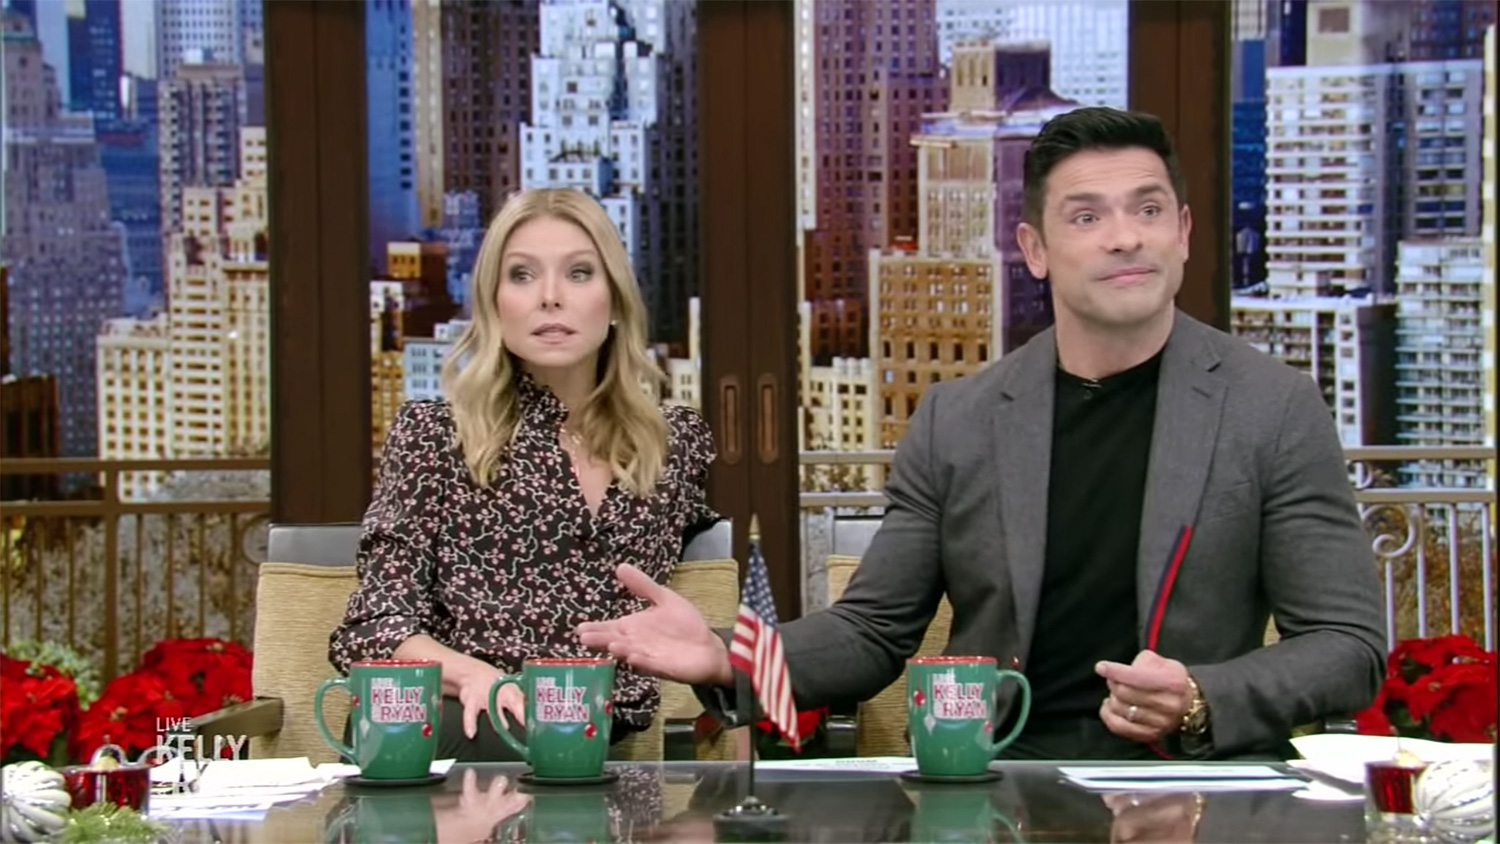 Mark Consuelos plays a recording of his snores for the Live with Kelly and Ryan audience!